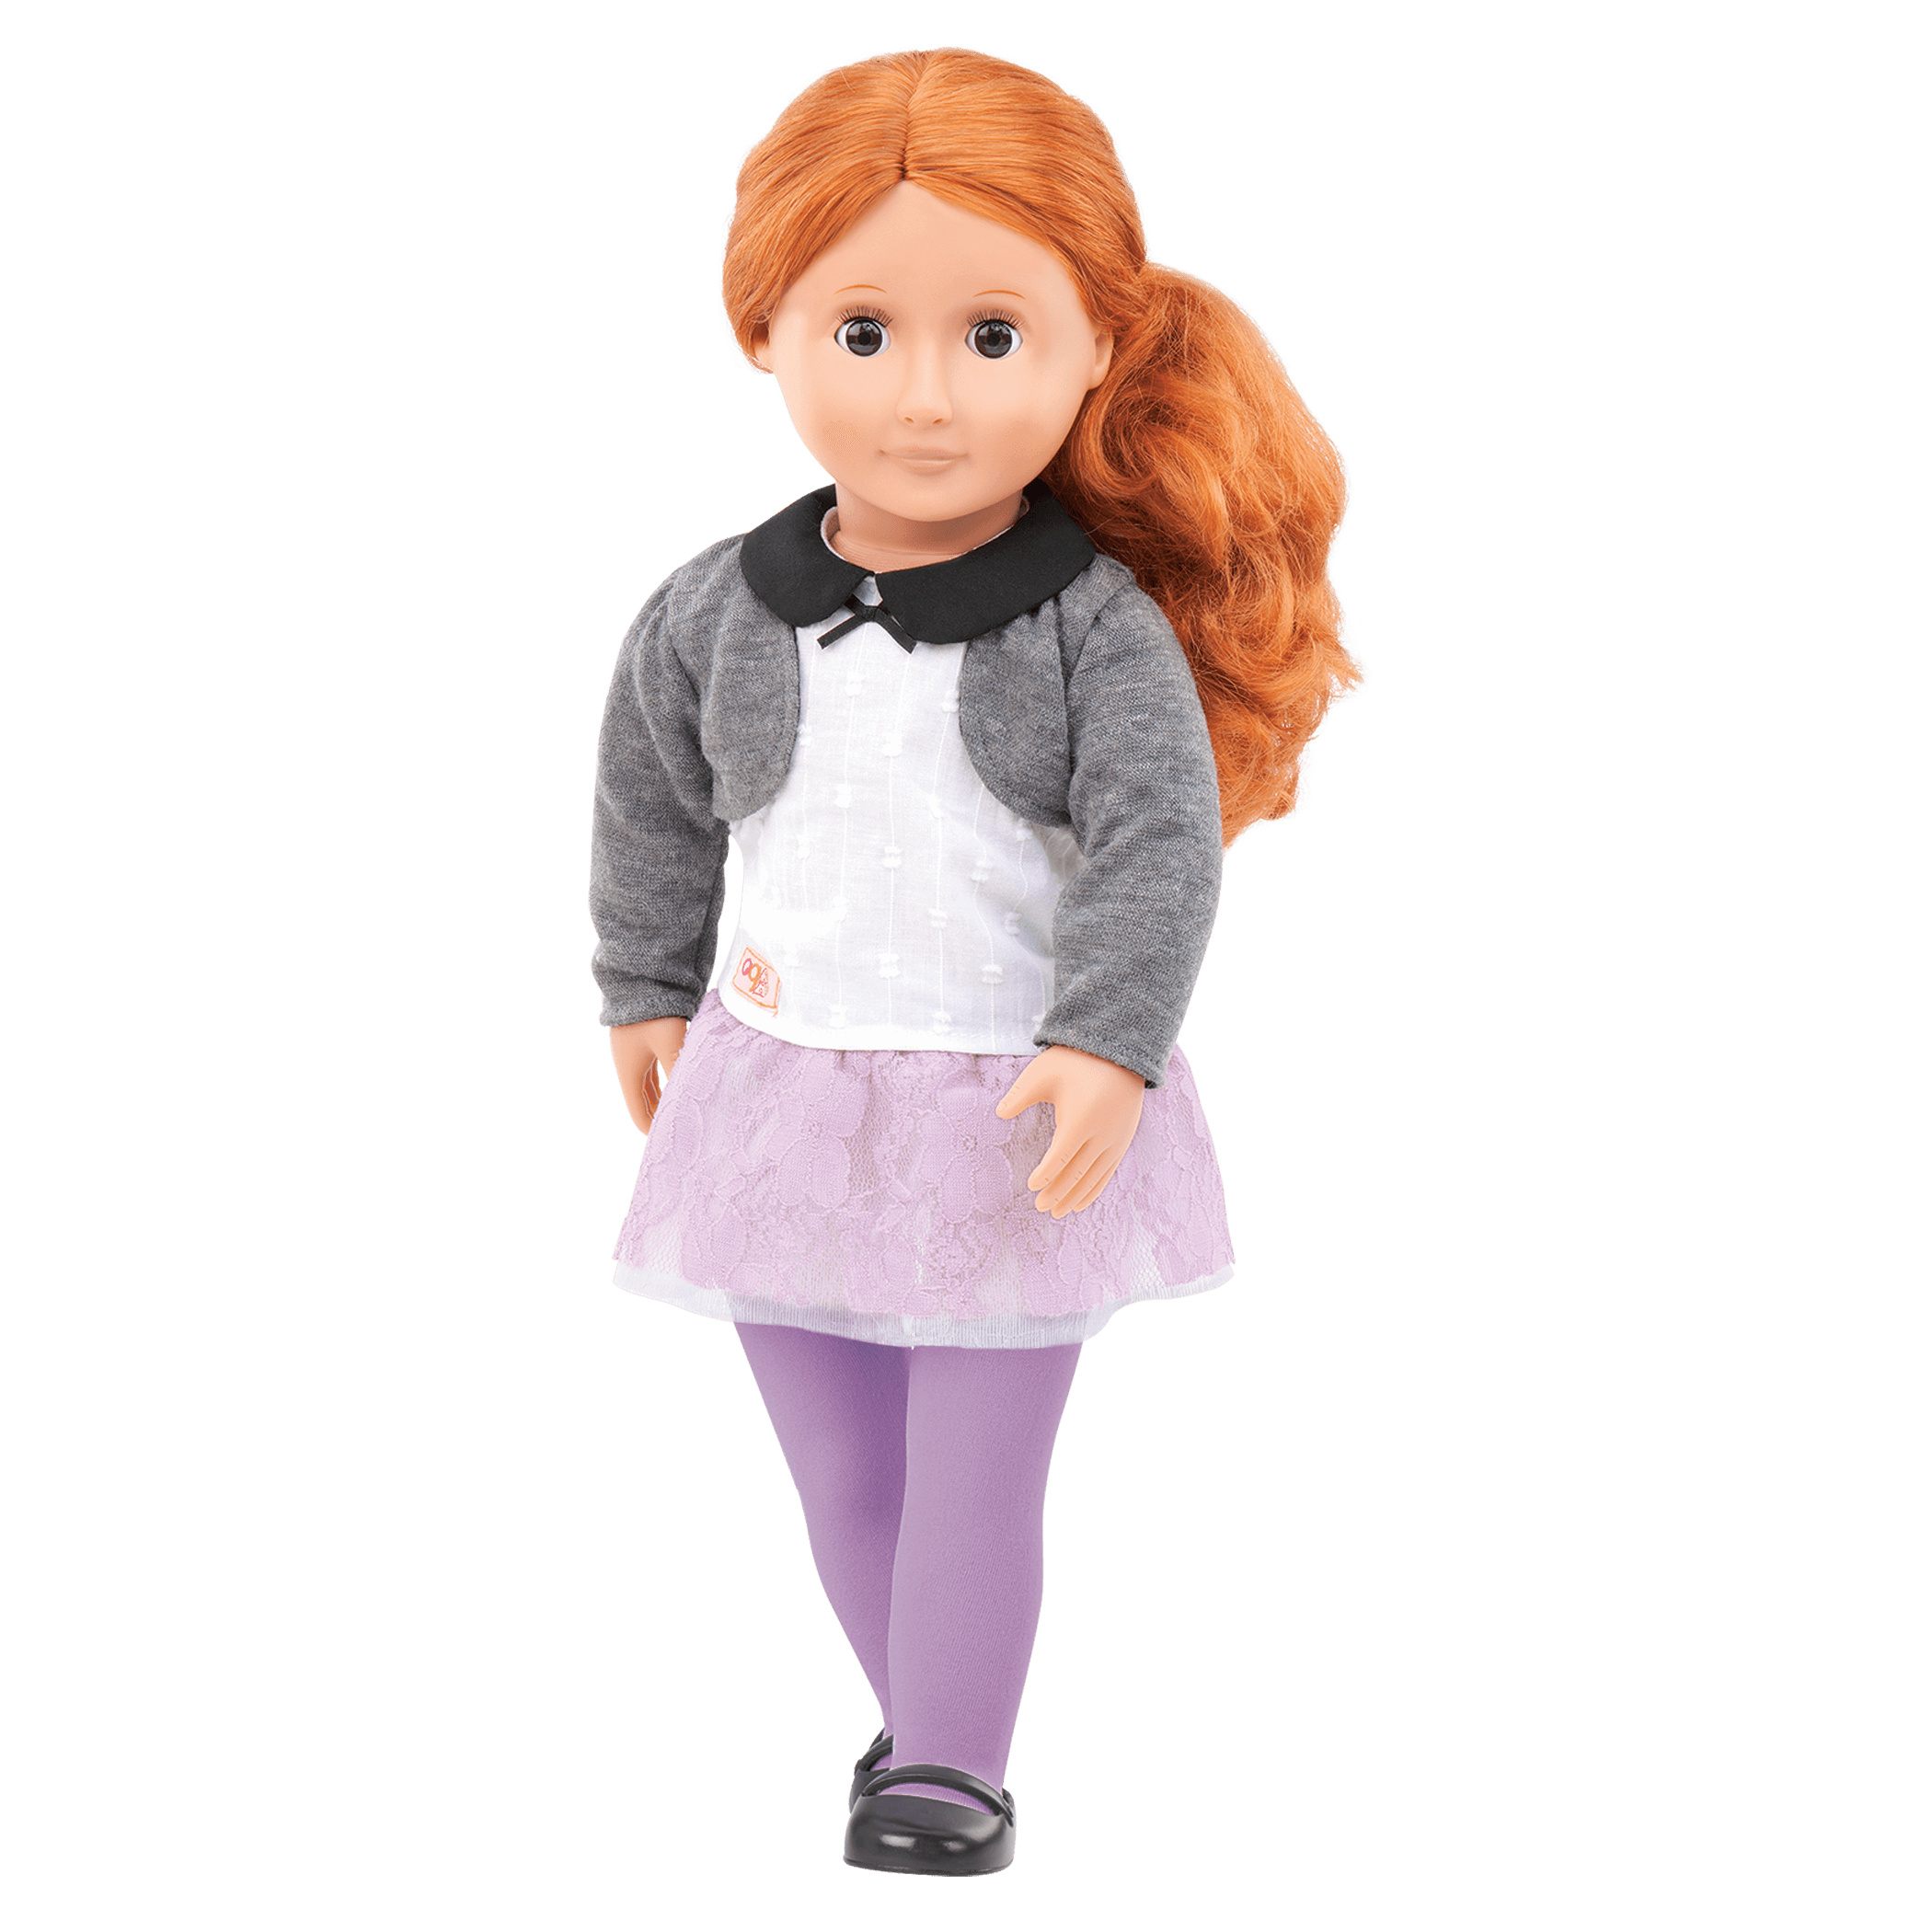 Ella Grace 18-inch Doll